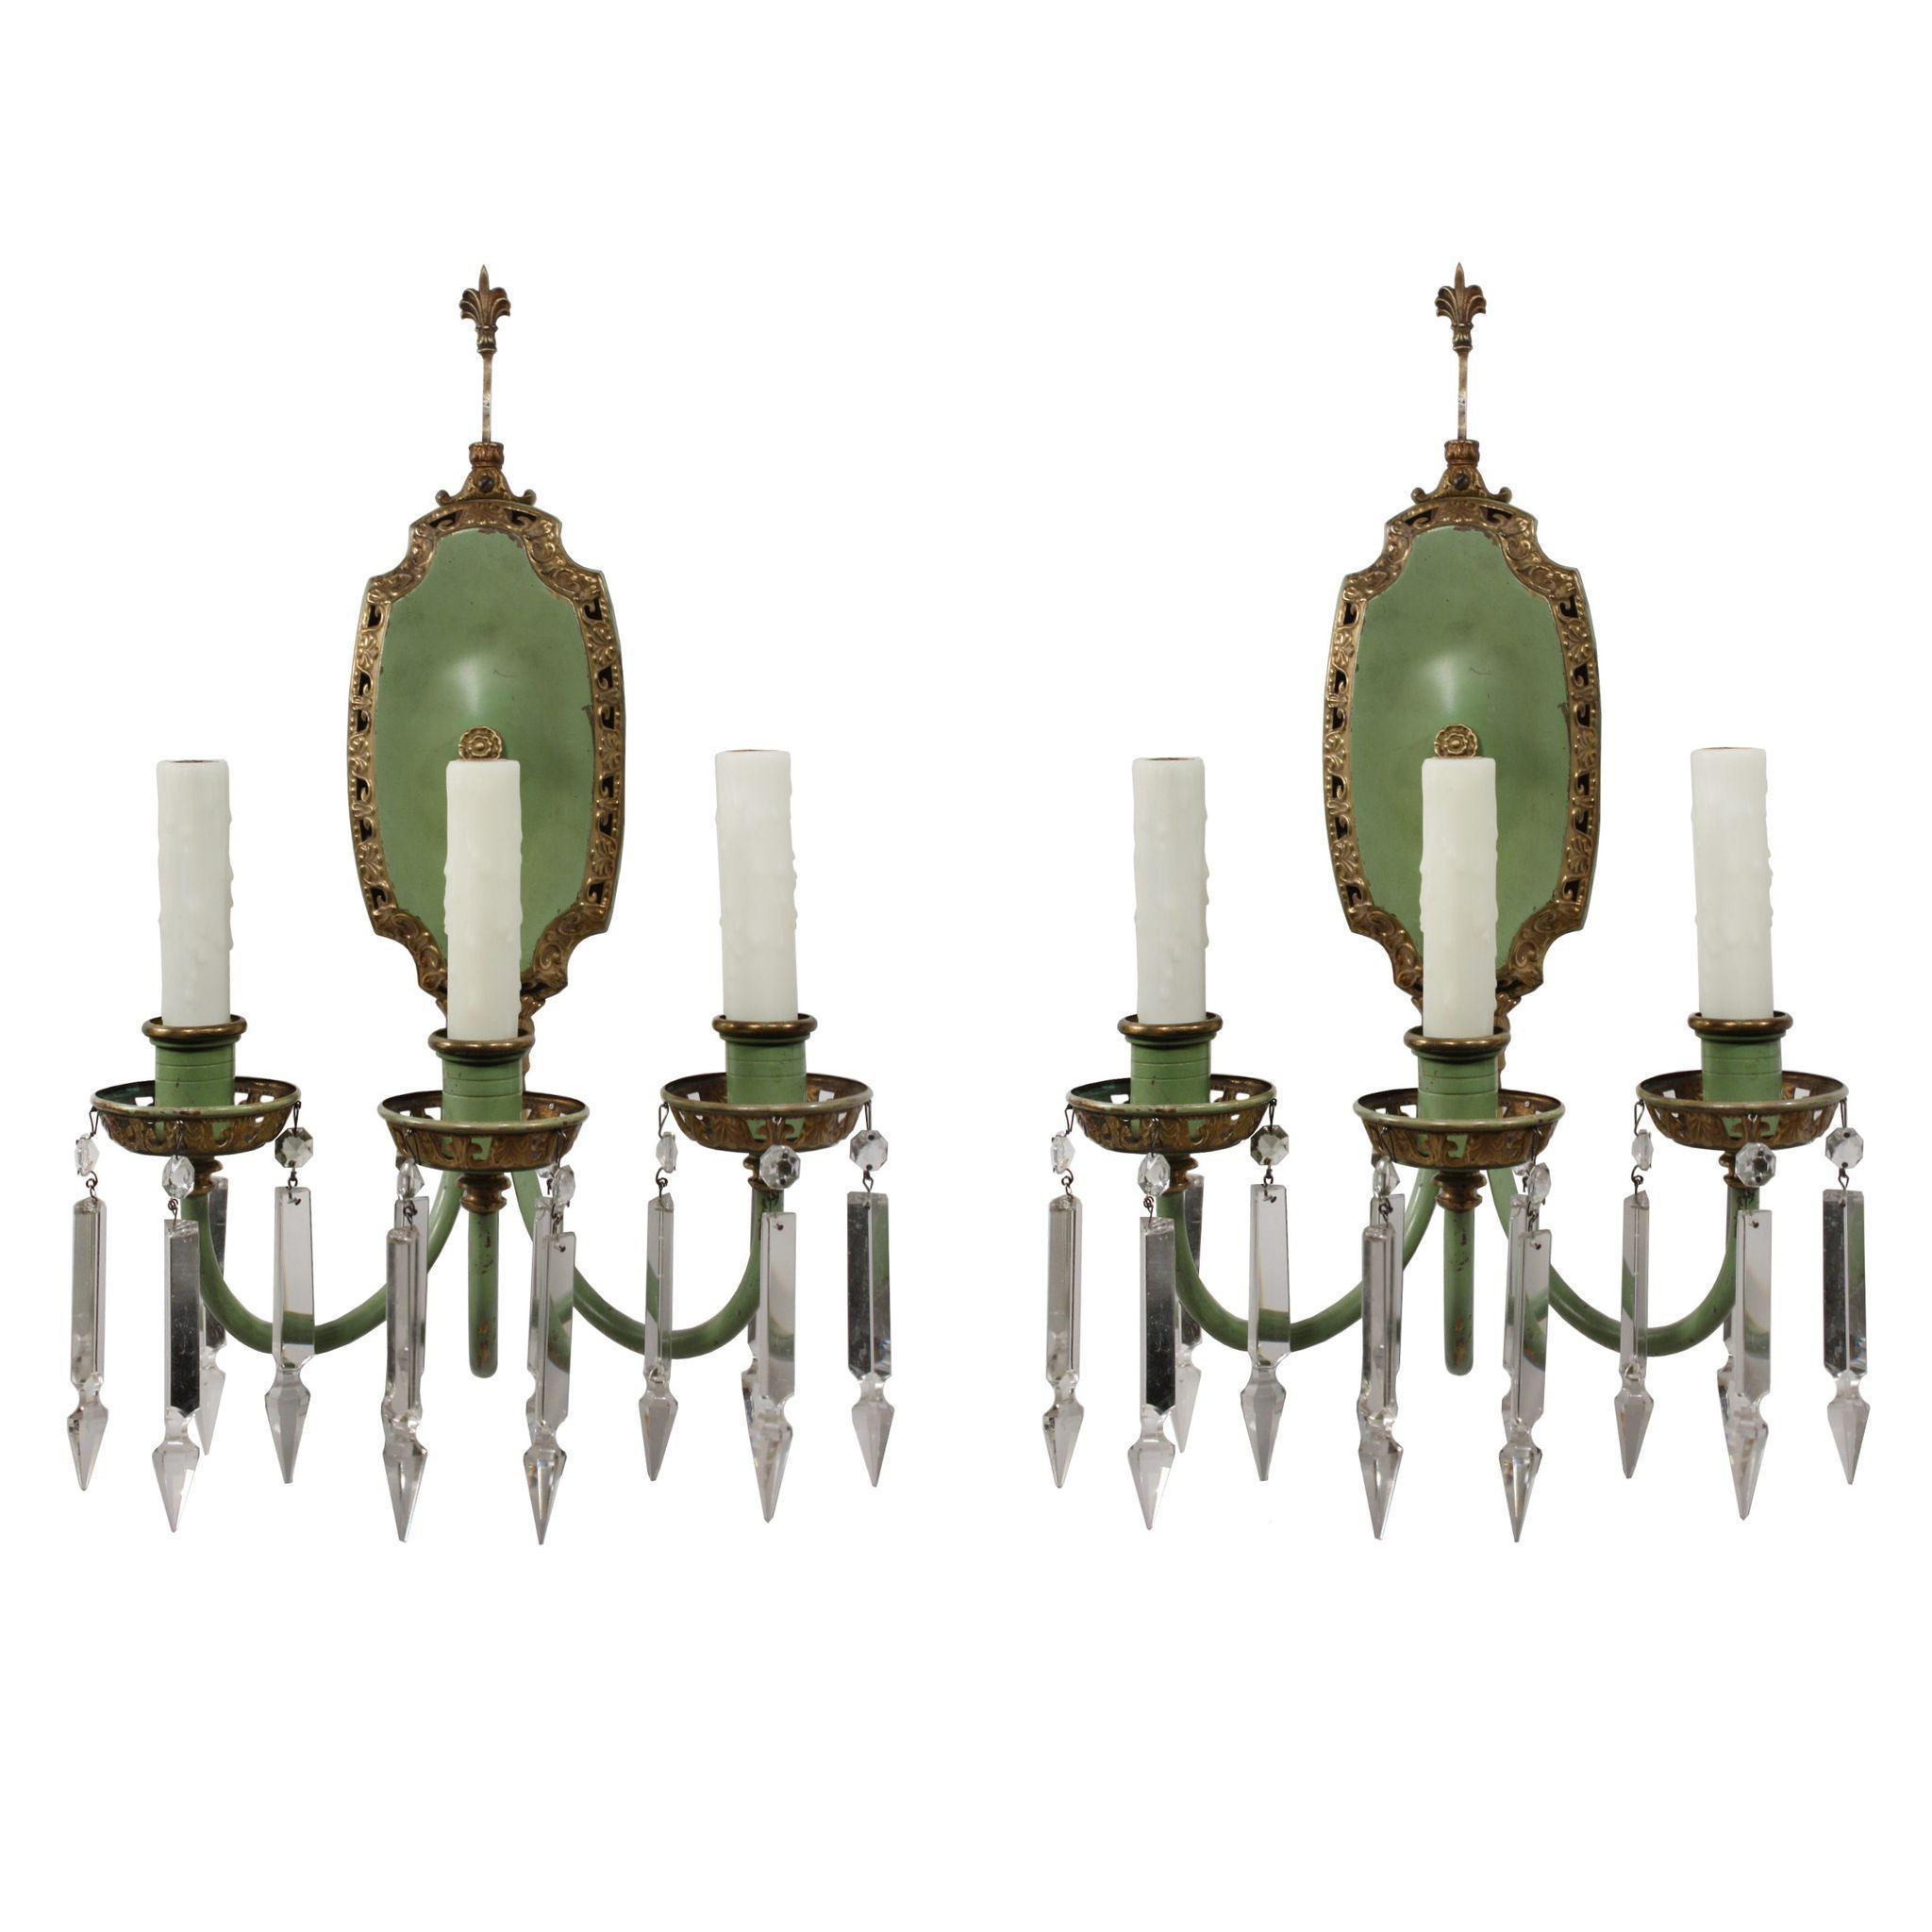 Magnificent Pair of Antique Neoclassical Sconces, Crystal Prisms